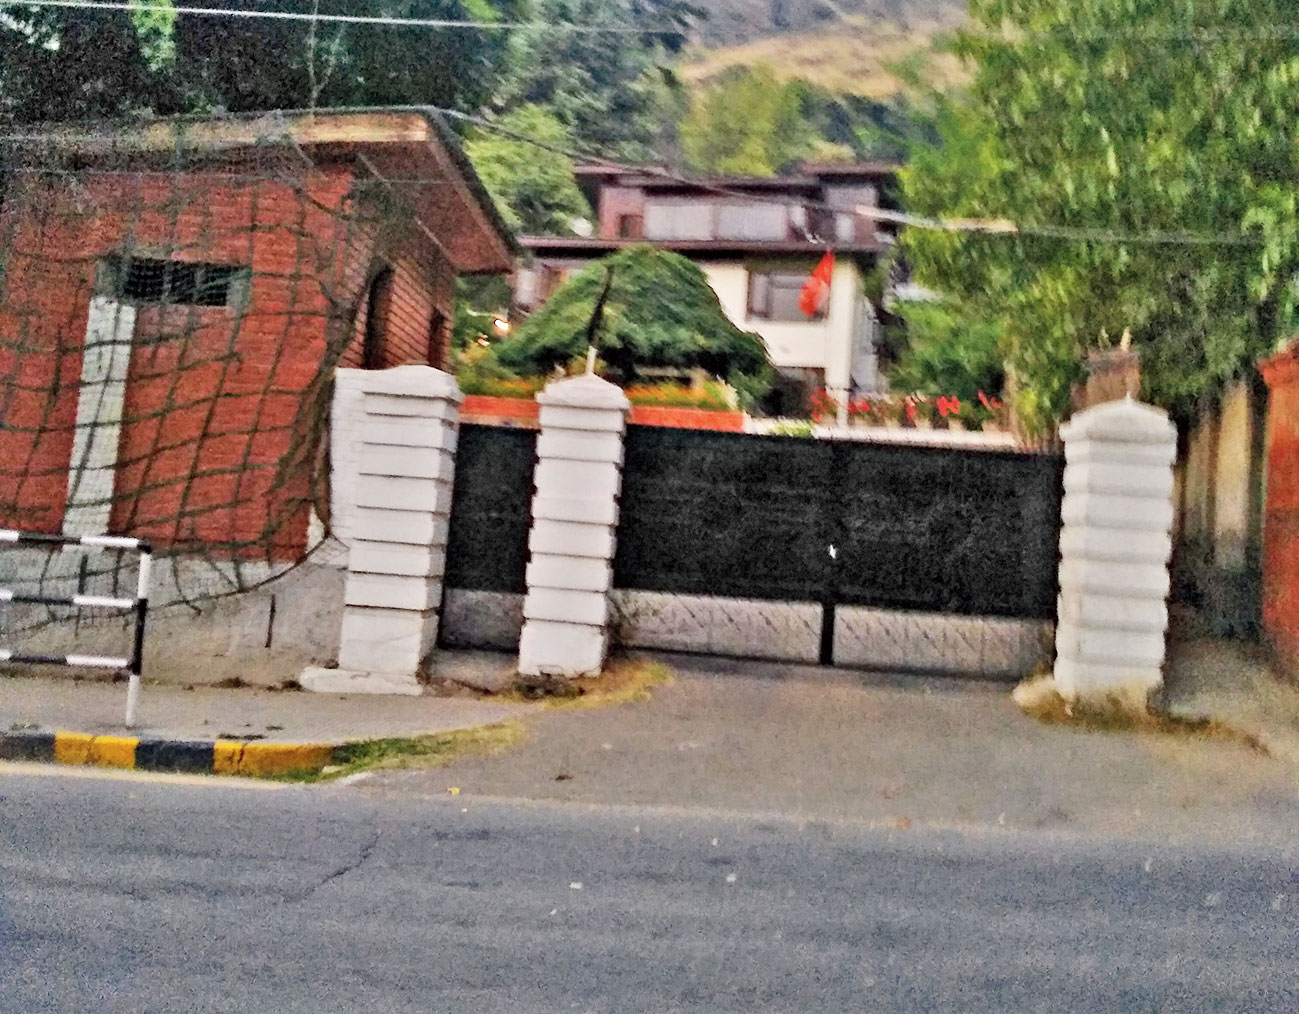 The black flag Farooq's daughter Safiya hoisted atop the gate of her house